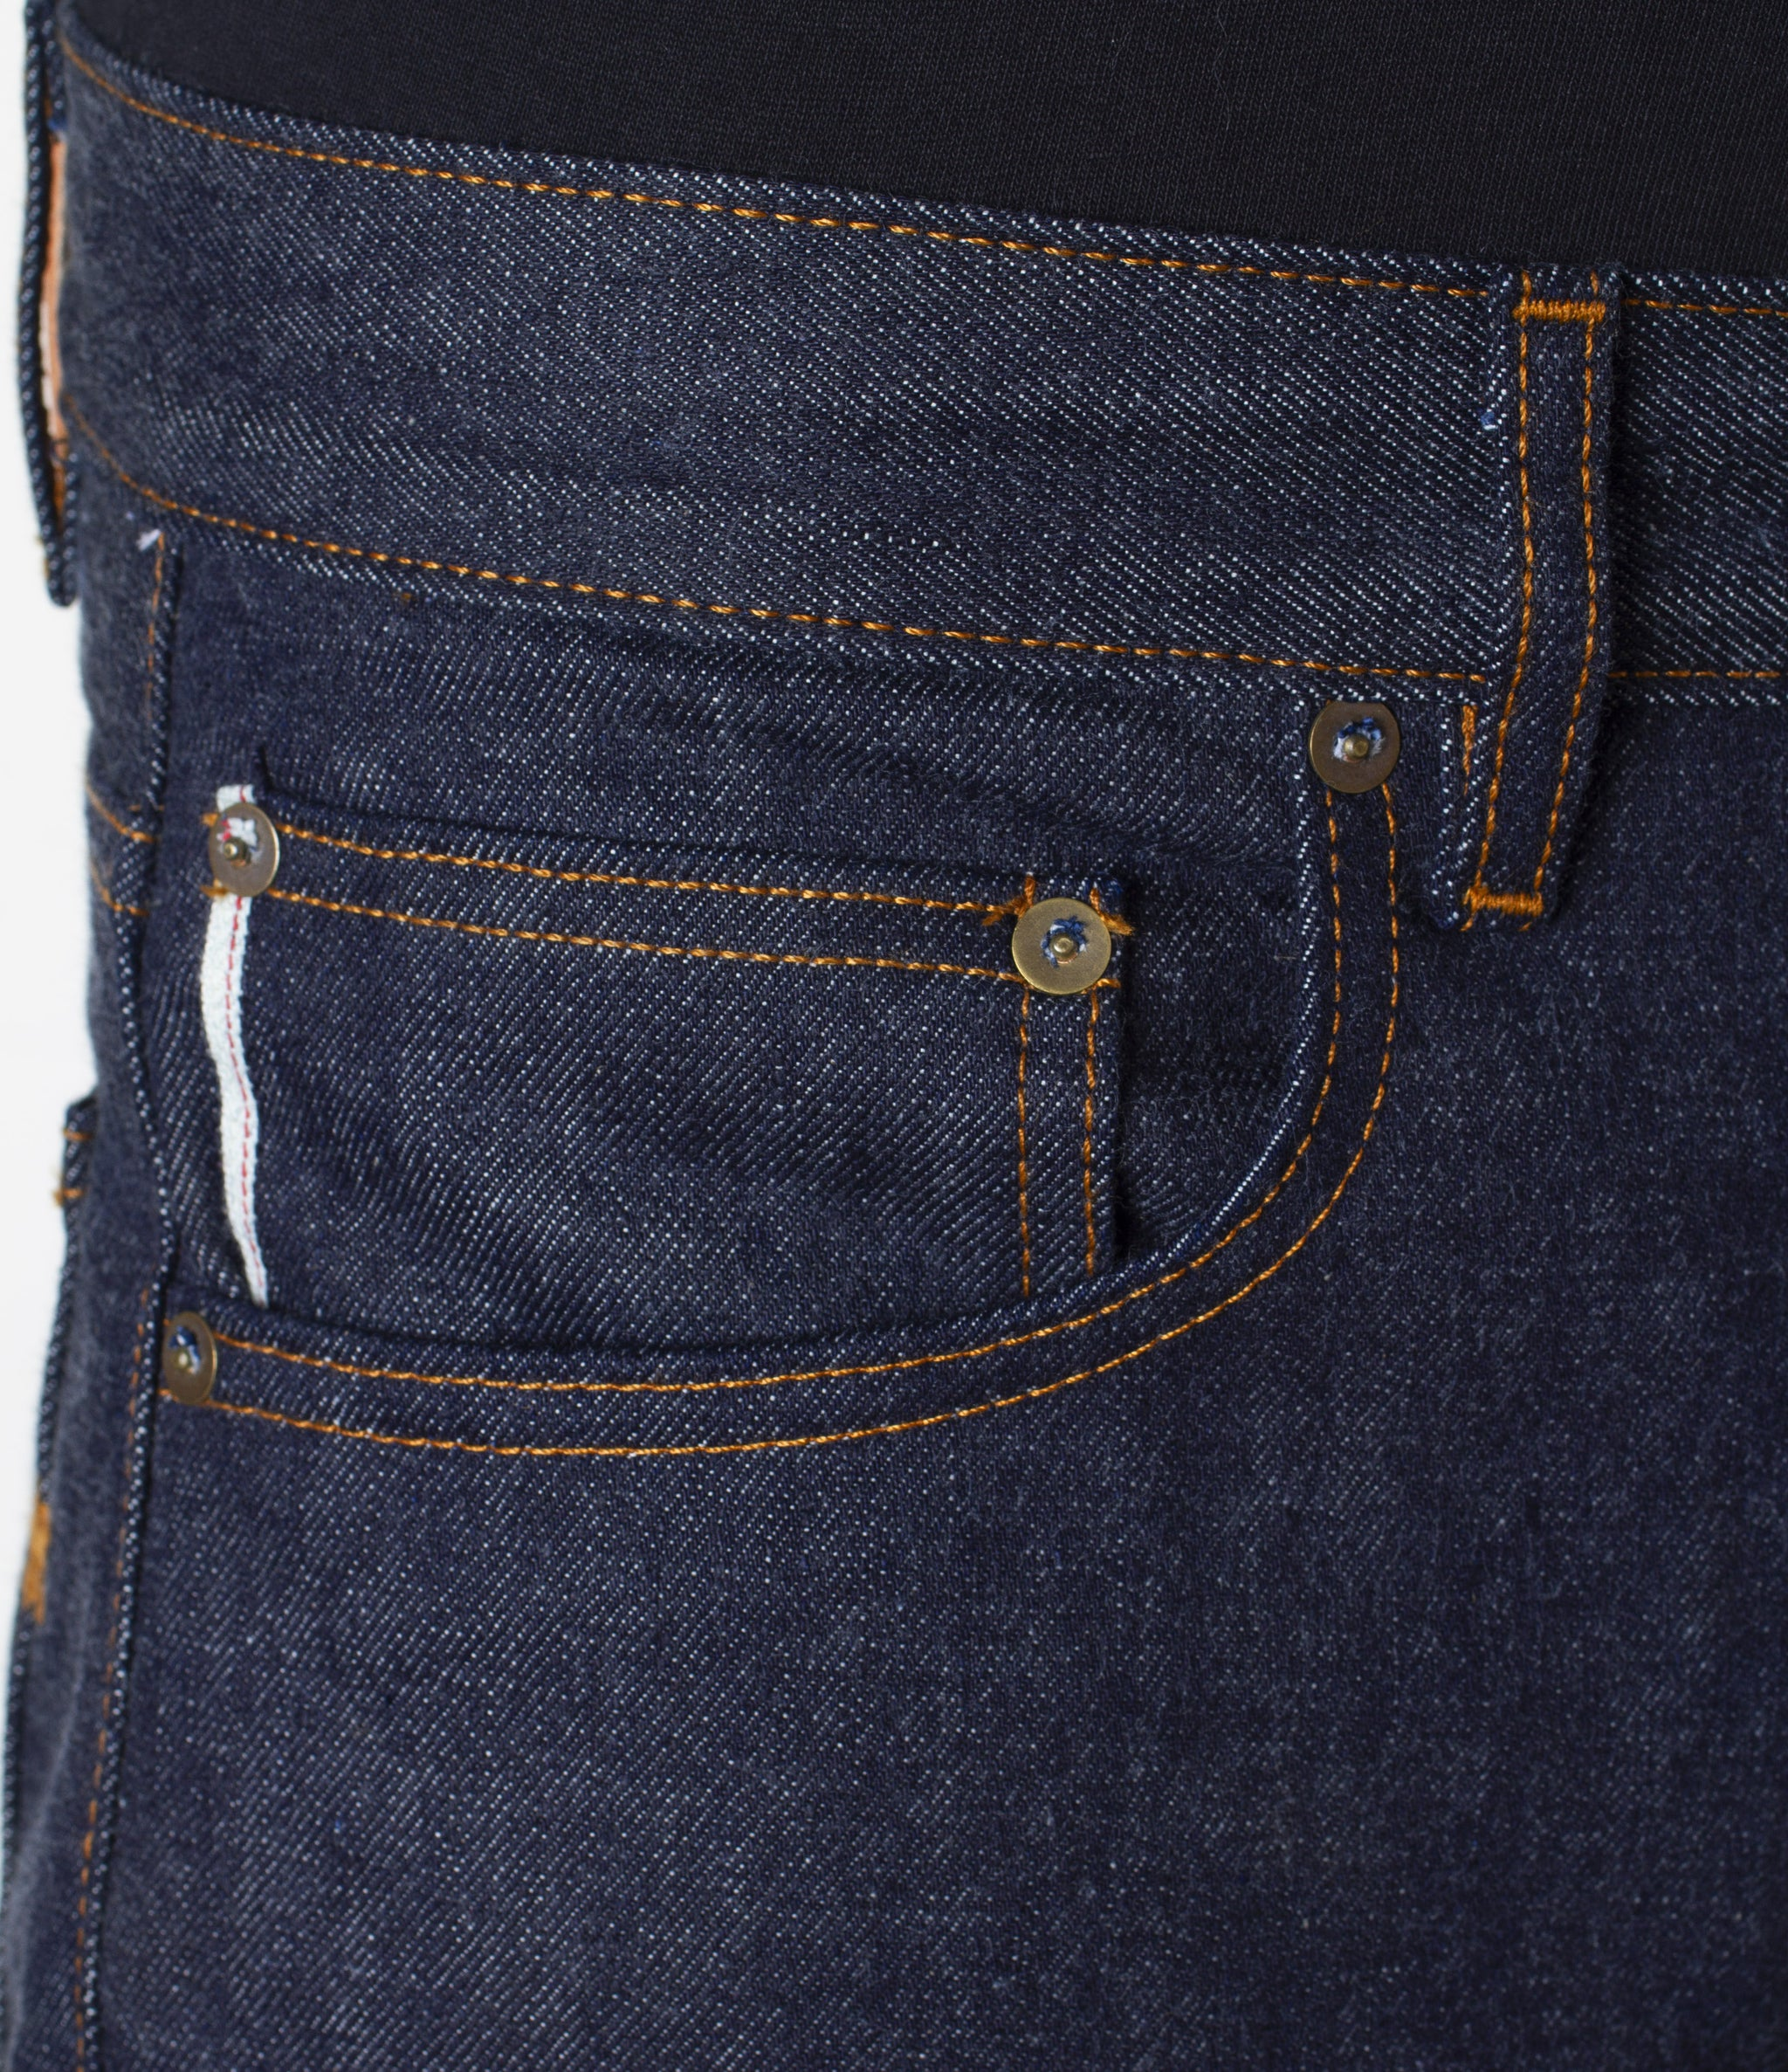 The Slim Straight 13.75oz 'Multi Yarn' Cone Mills Selvage